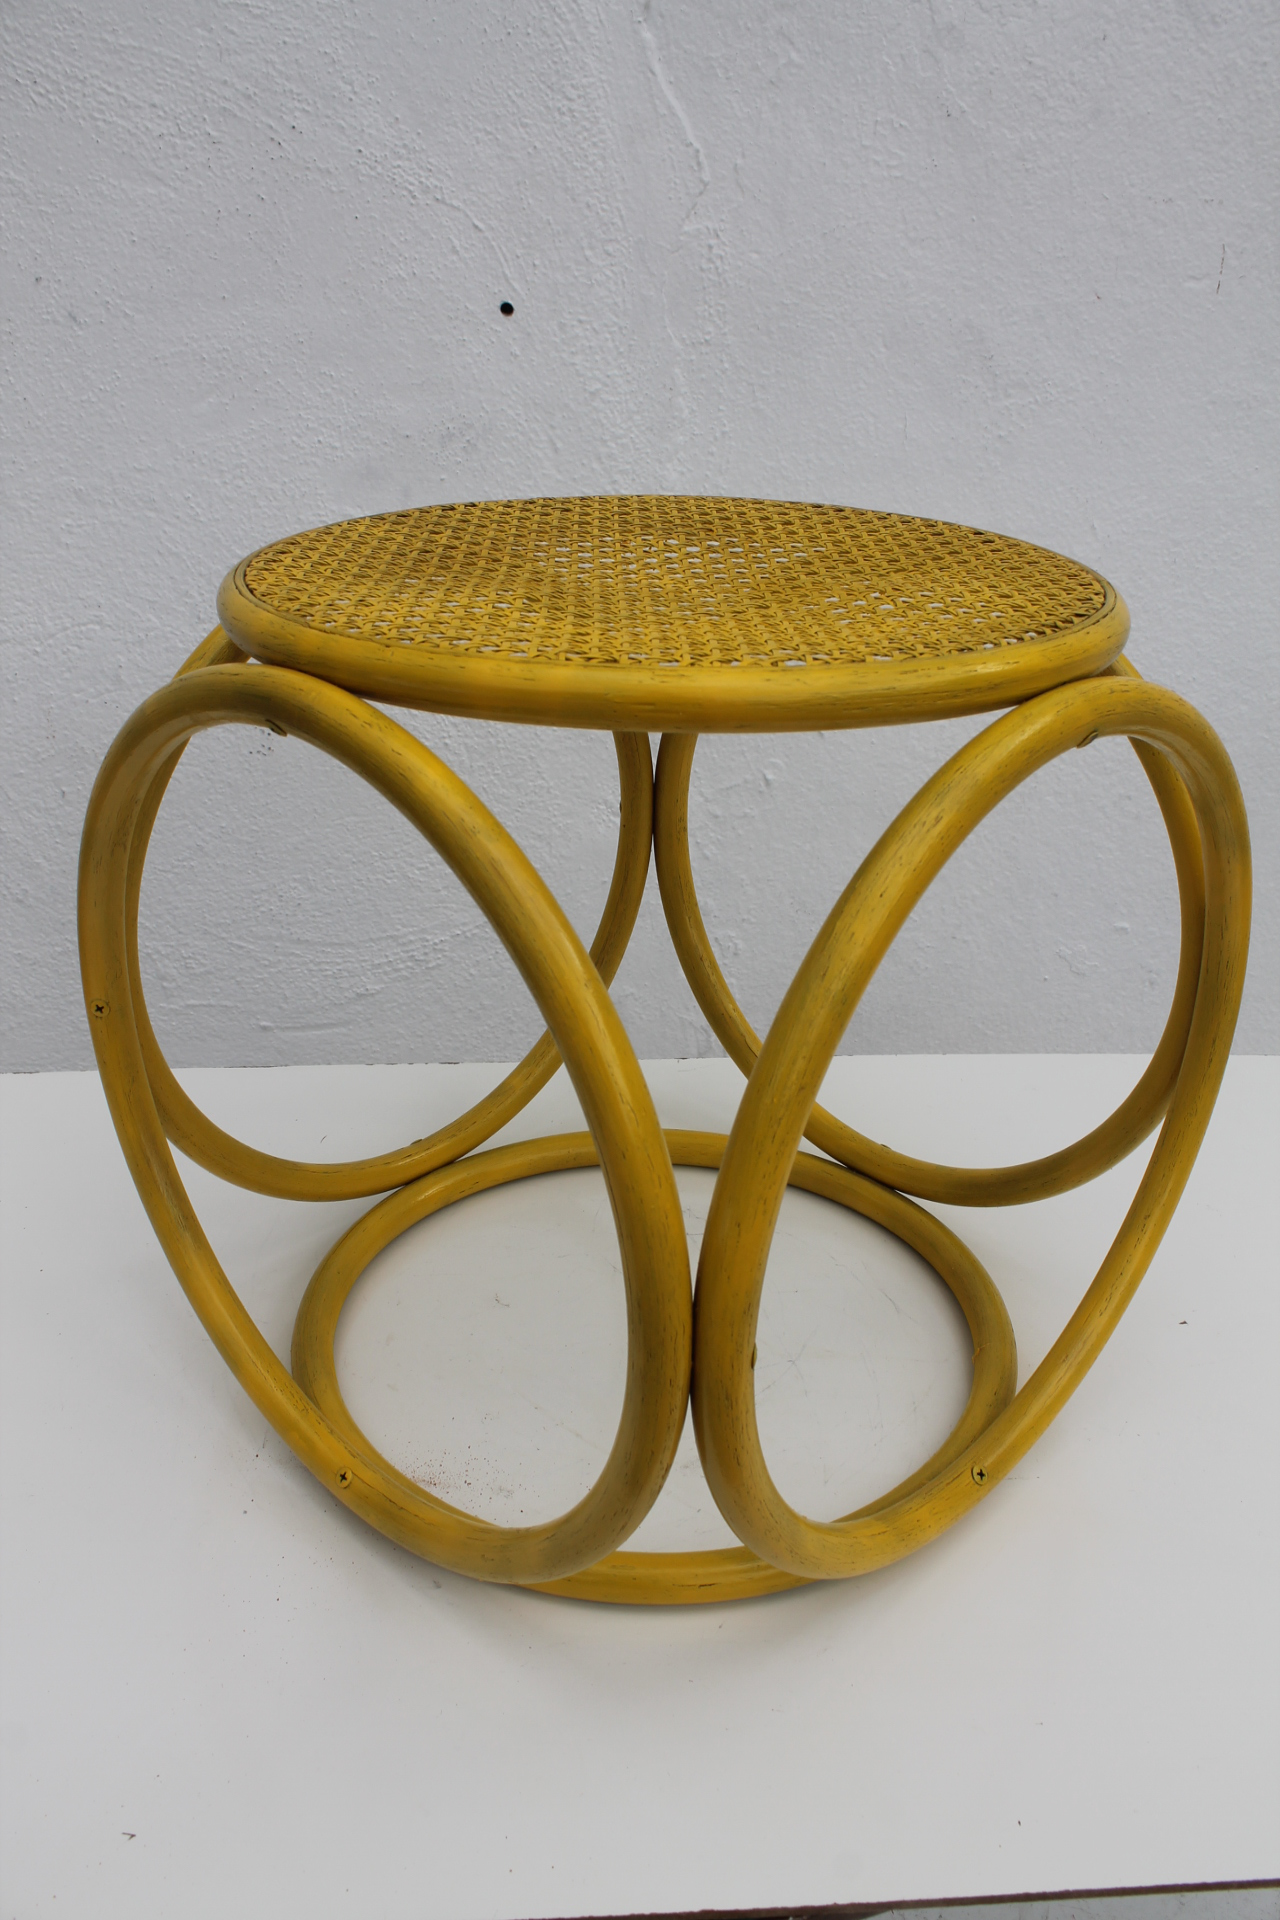 Bentwood U0026 Cane Yellow Painted Stool Side Table In The Style Of Michael  Thonet   Image